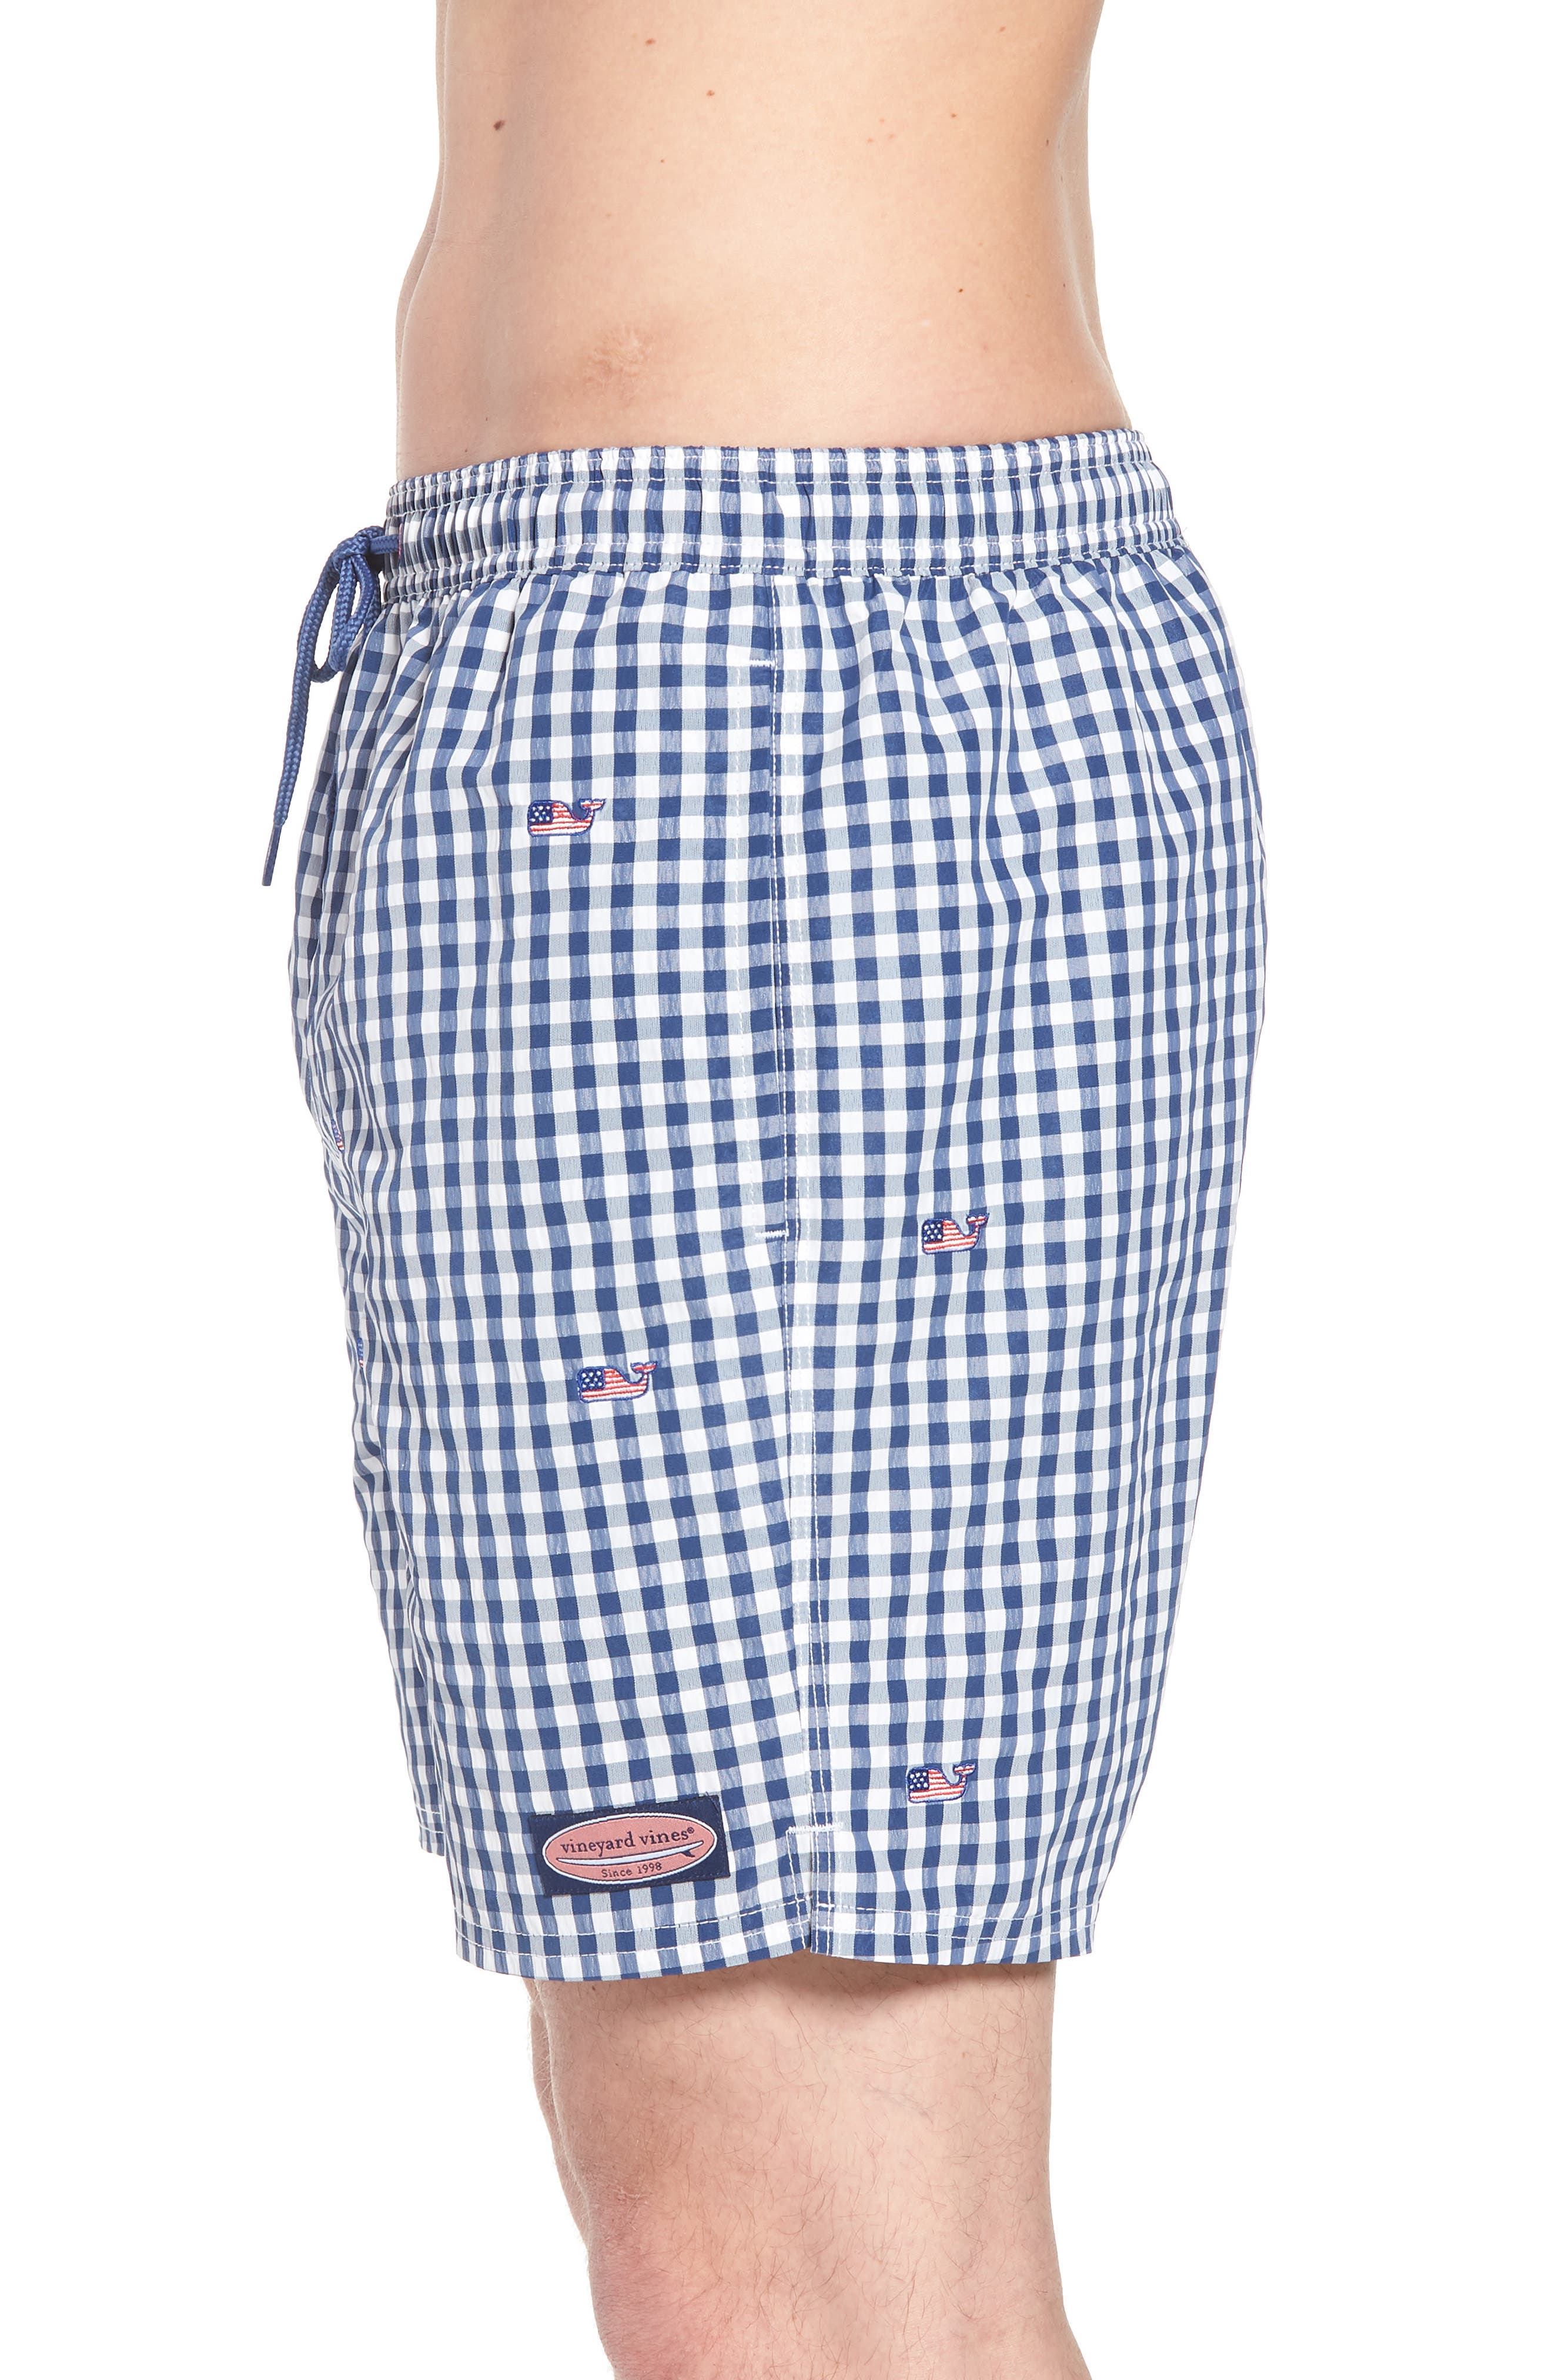 Chappy Flag Whale Embroidered Gingham Swim Trunks,                             Alternate thumbnail 3, color,                             461